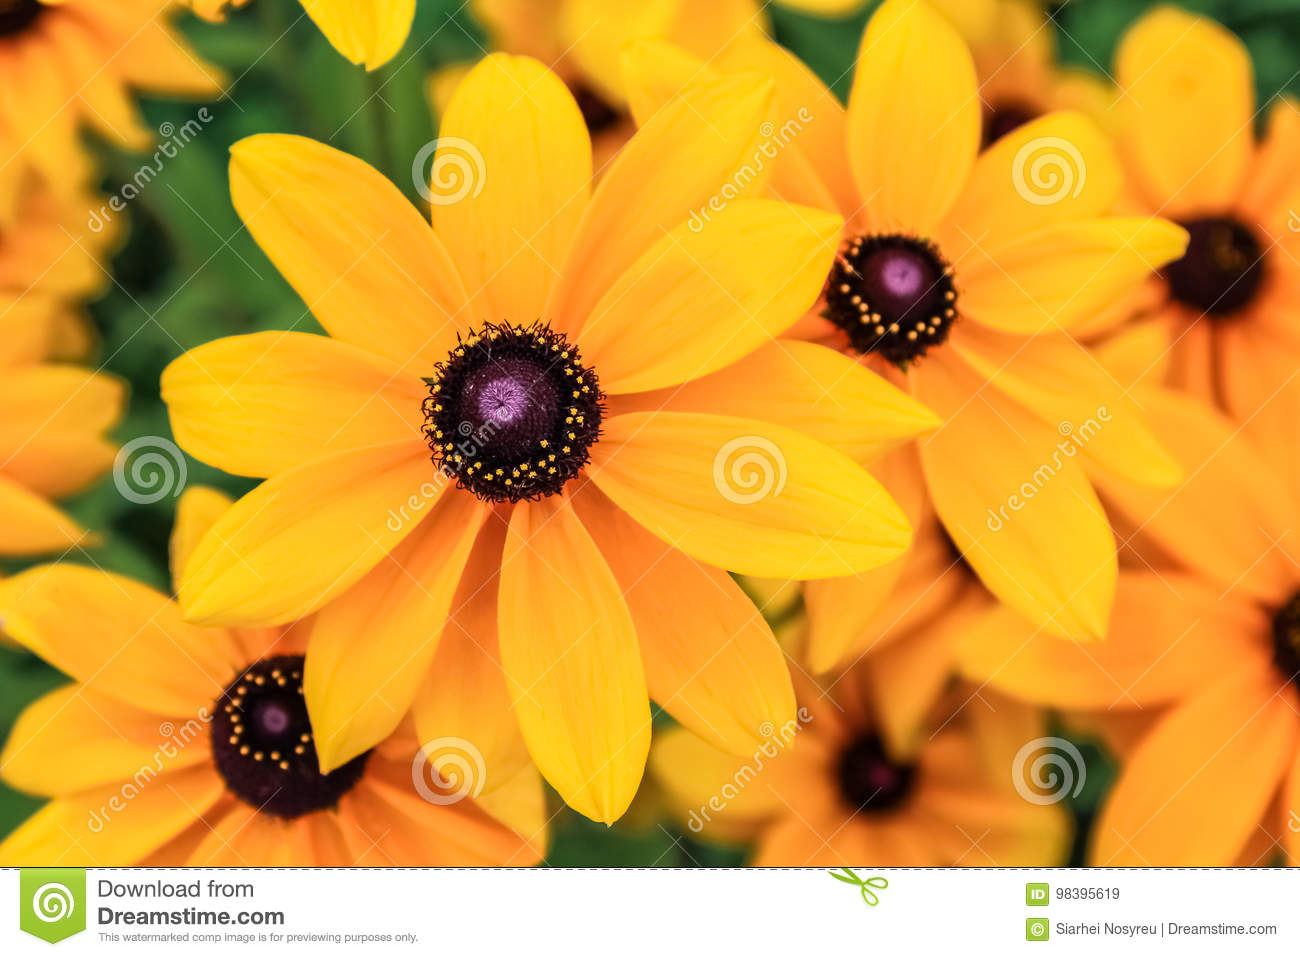 Black eyed susan, rudbeckia flowers.